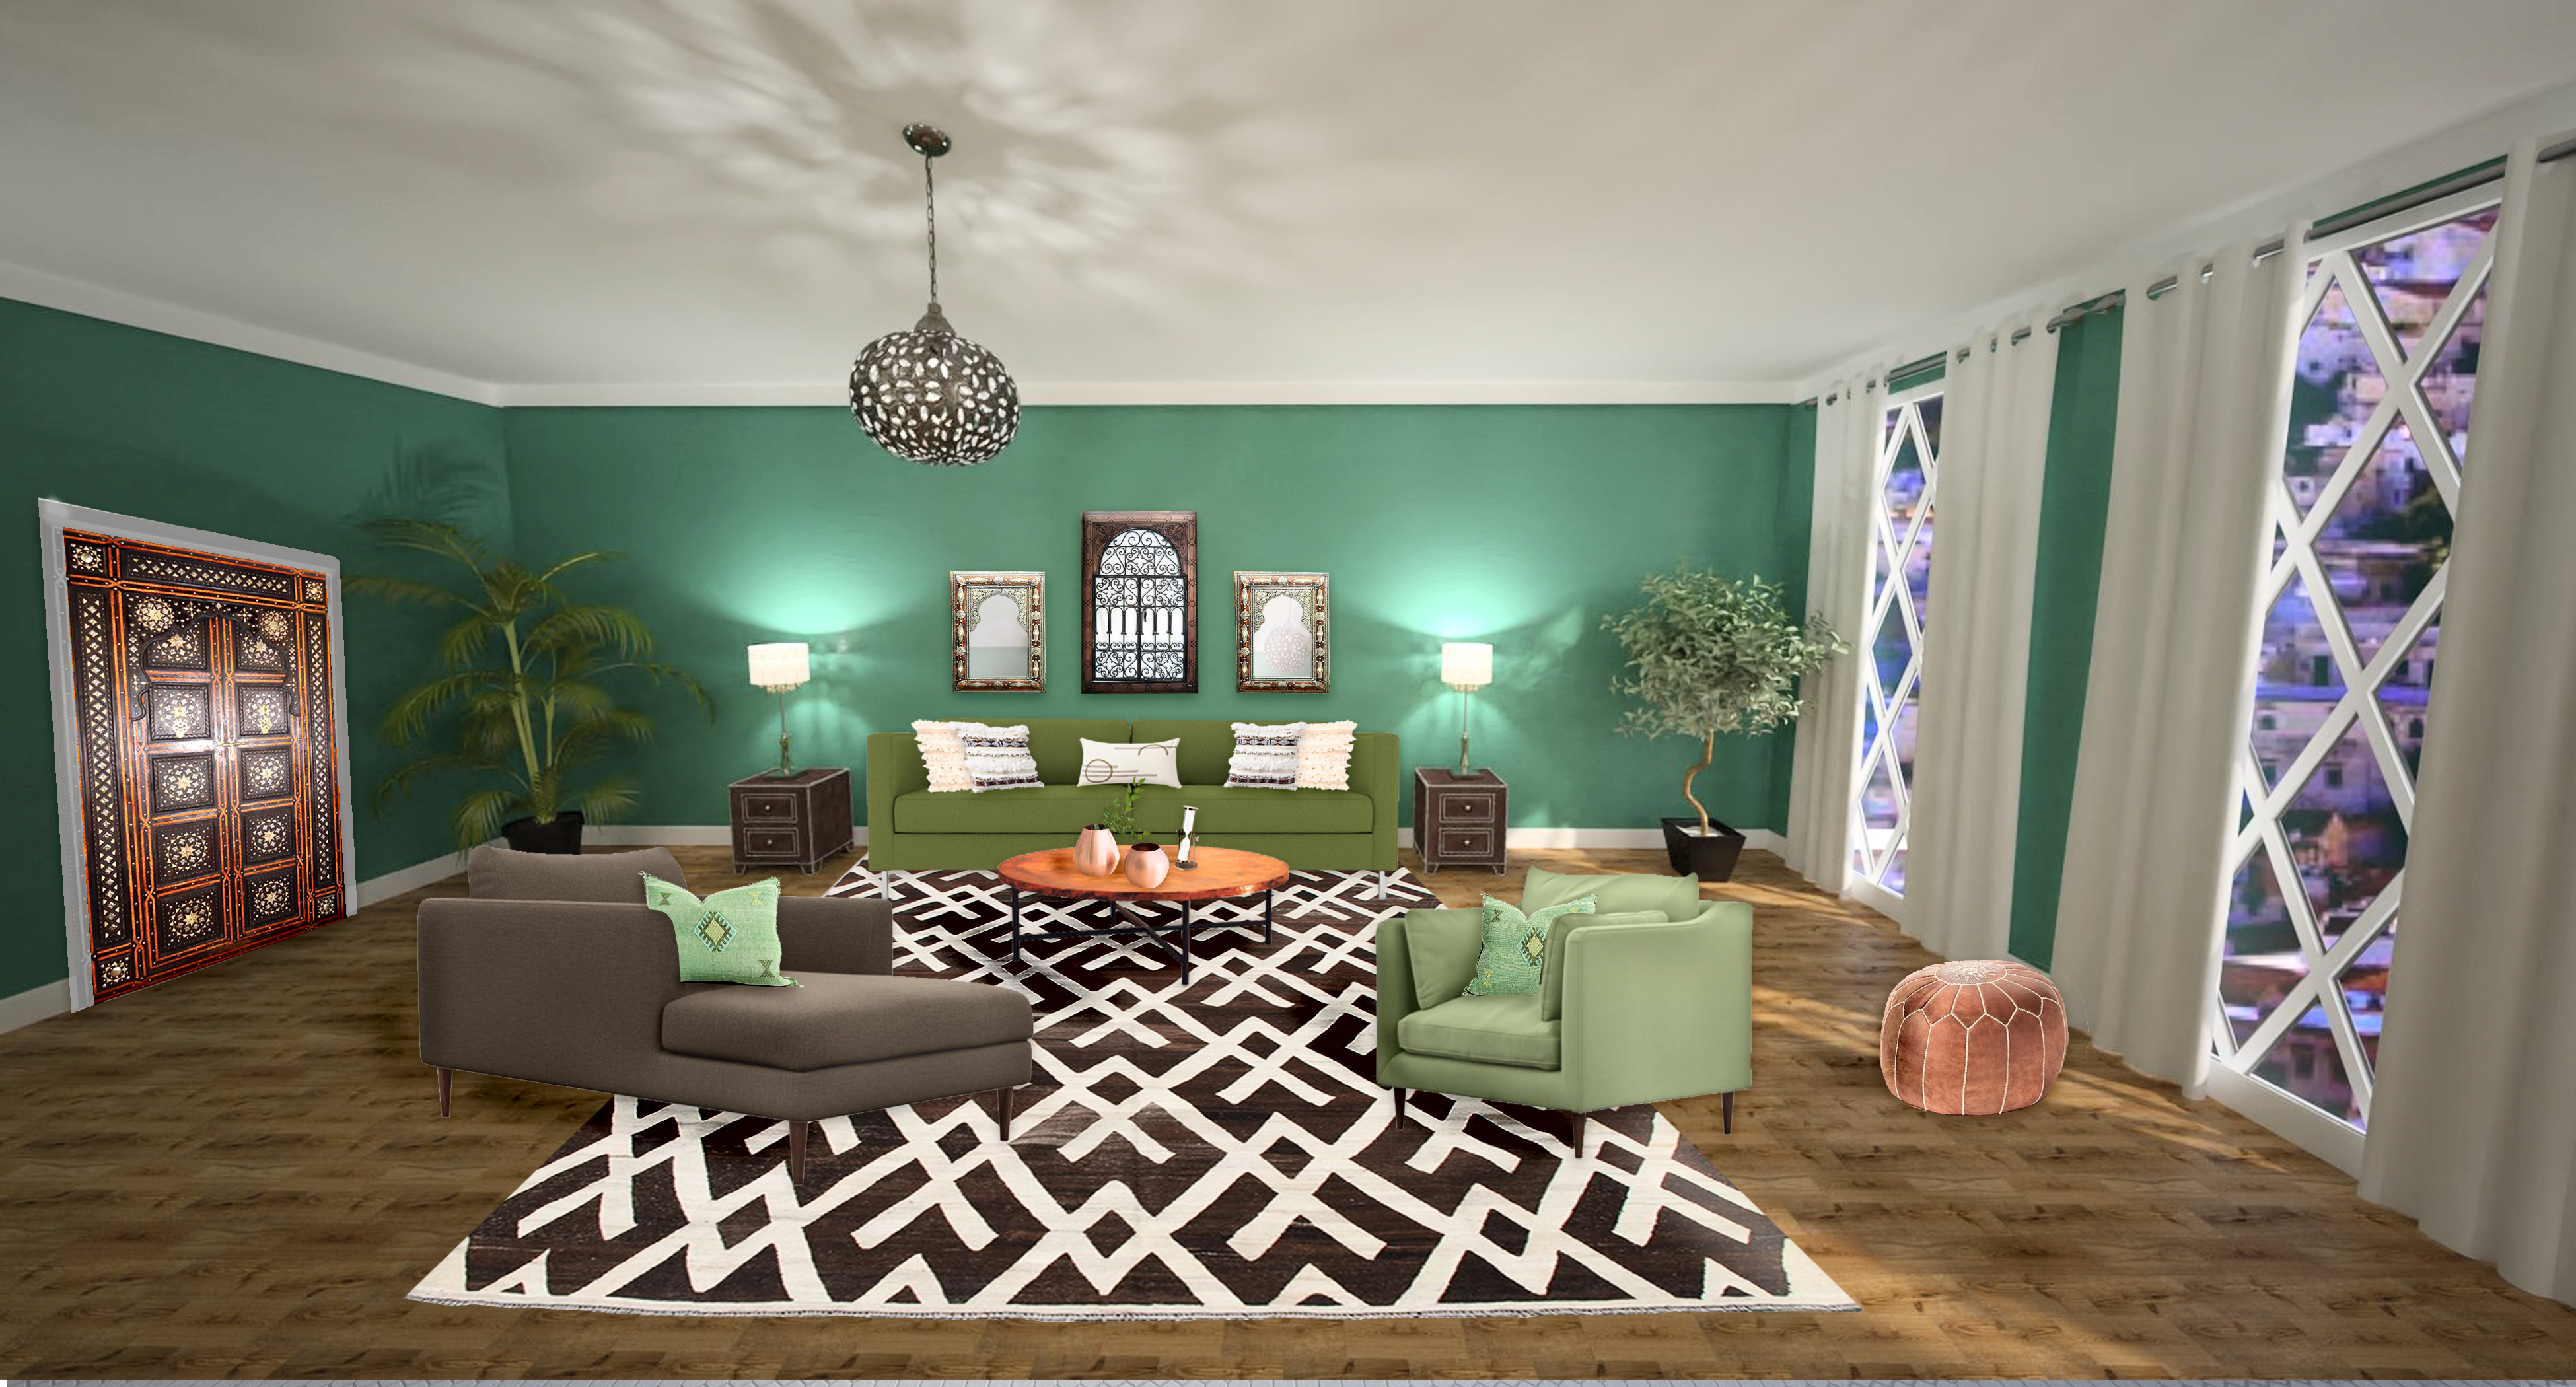 Moroccan style Living Room 3D render by Northern Lights Home Staging and Design. www.northernlightsstaging.com. #moroccan #kilimrug #bohemian #globalstyle #interiordesign